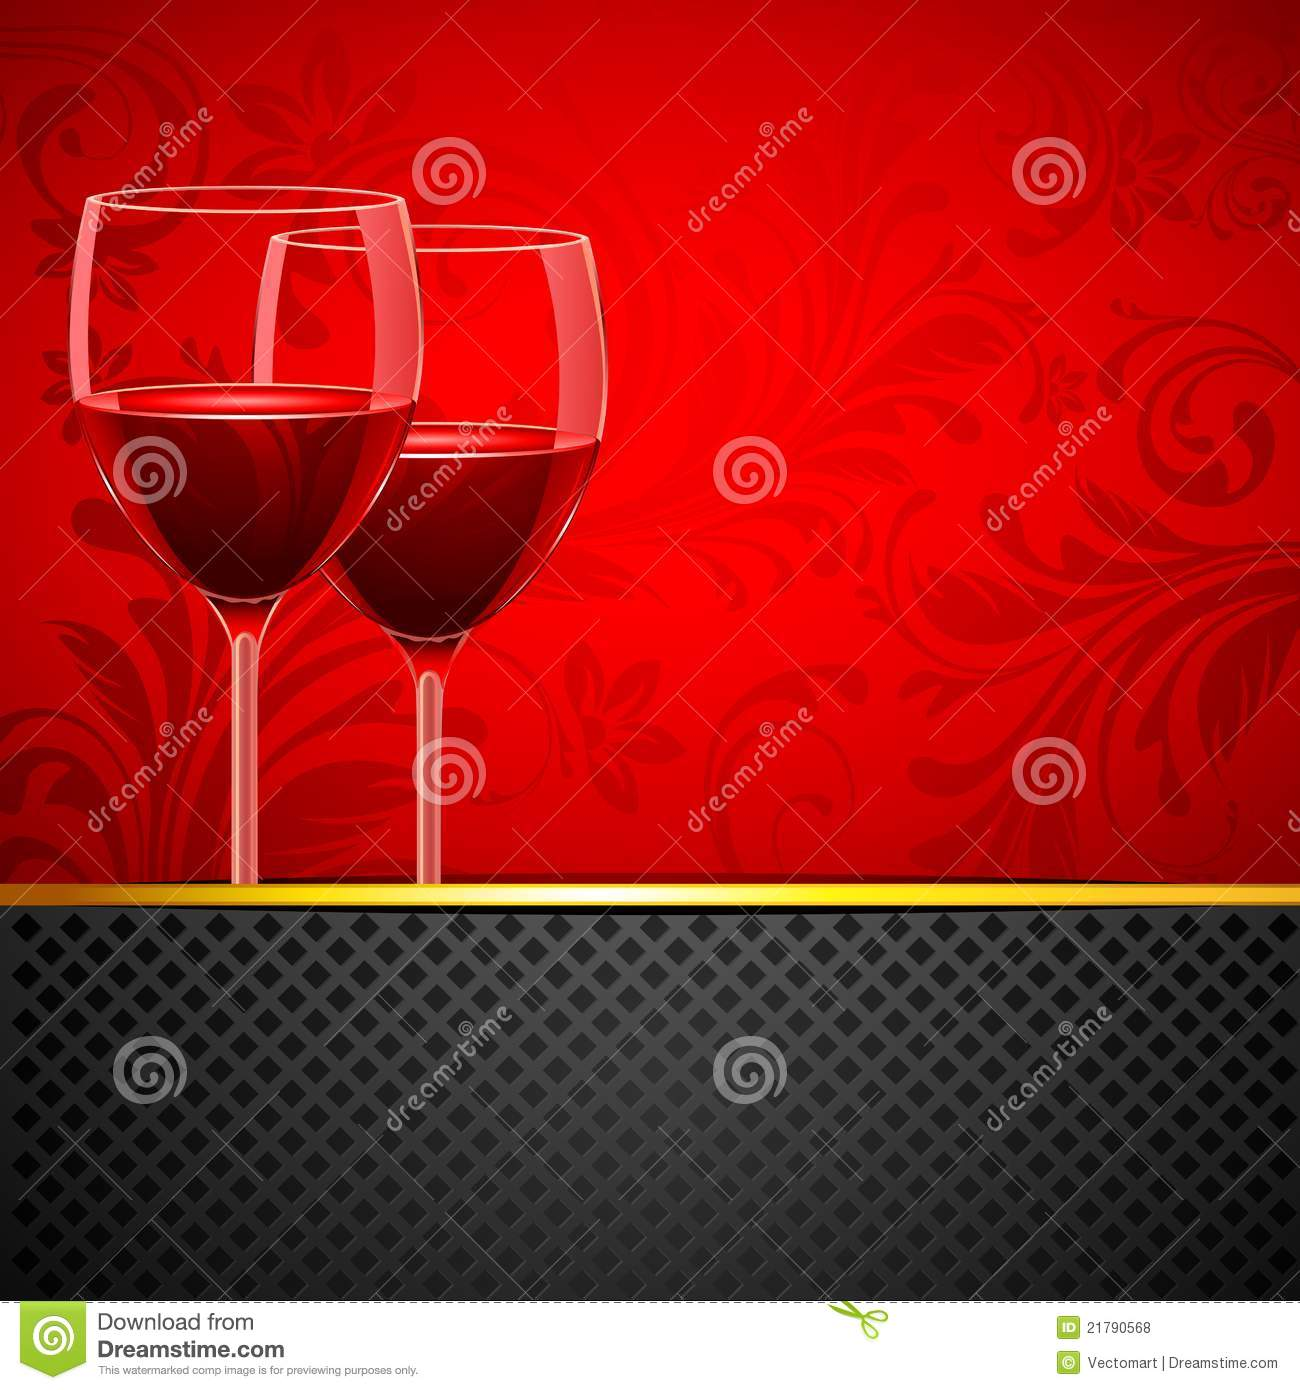 Wine Glass on Floral Background